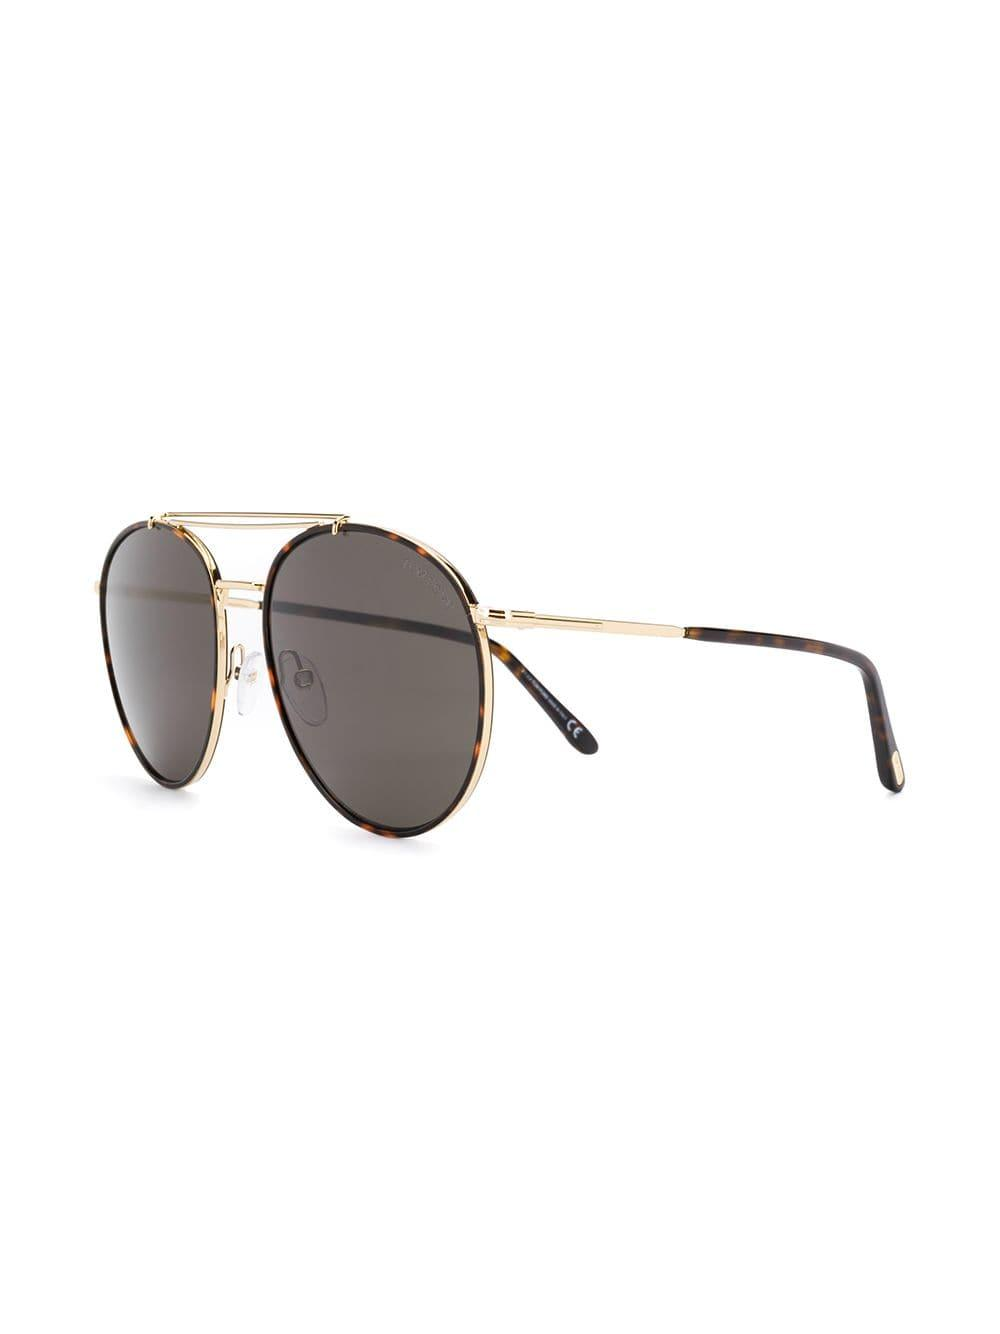 78dfe75c28 Lyst - Tom Ford Wesley Sunglasses in Brown for Men